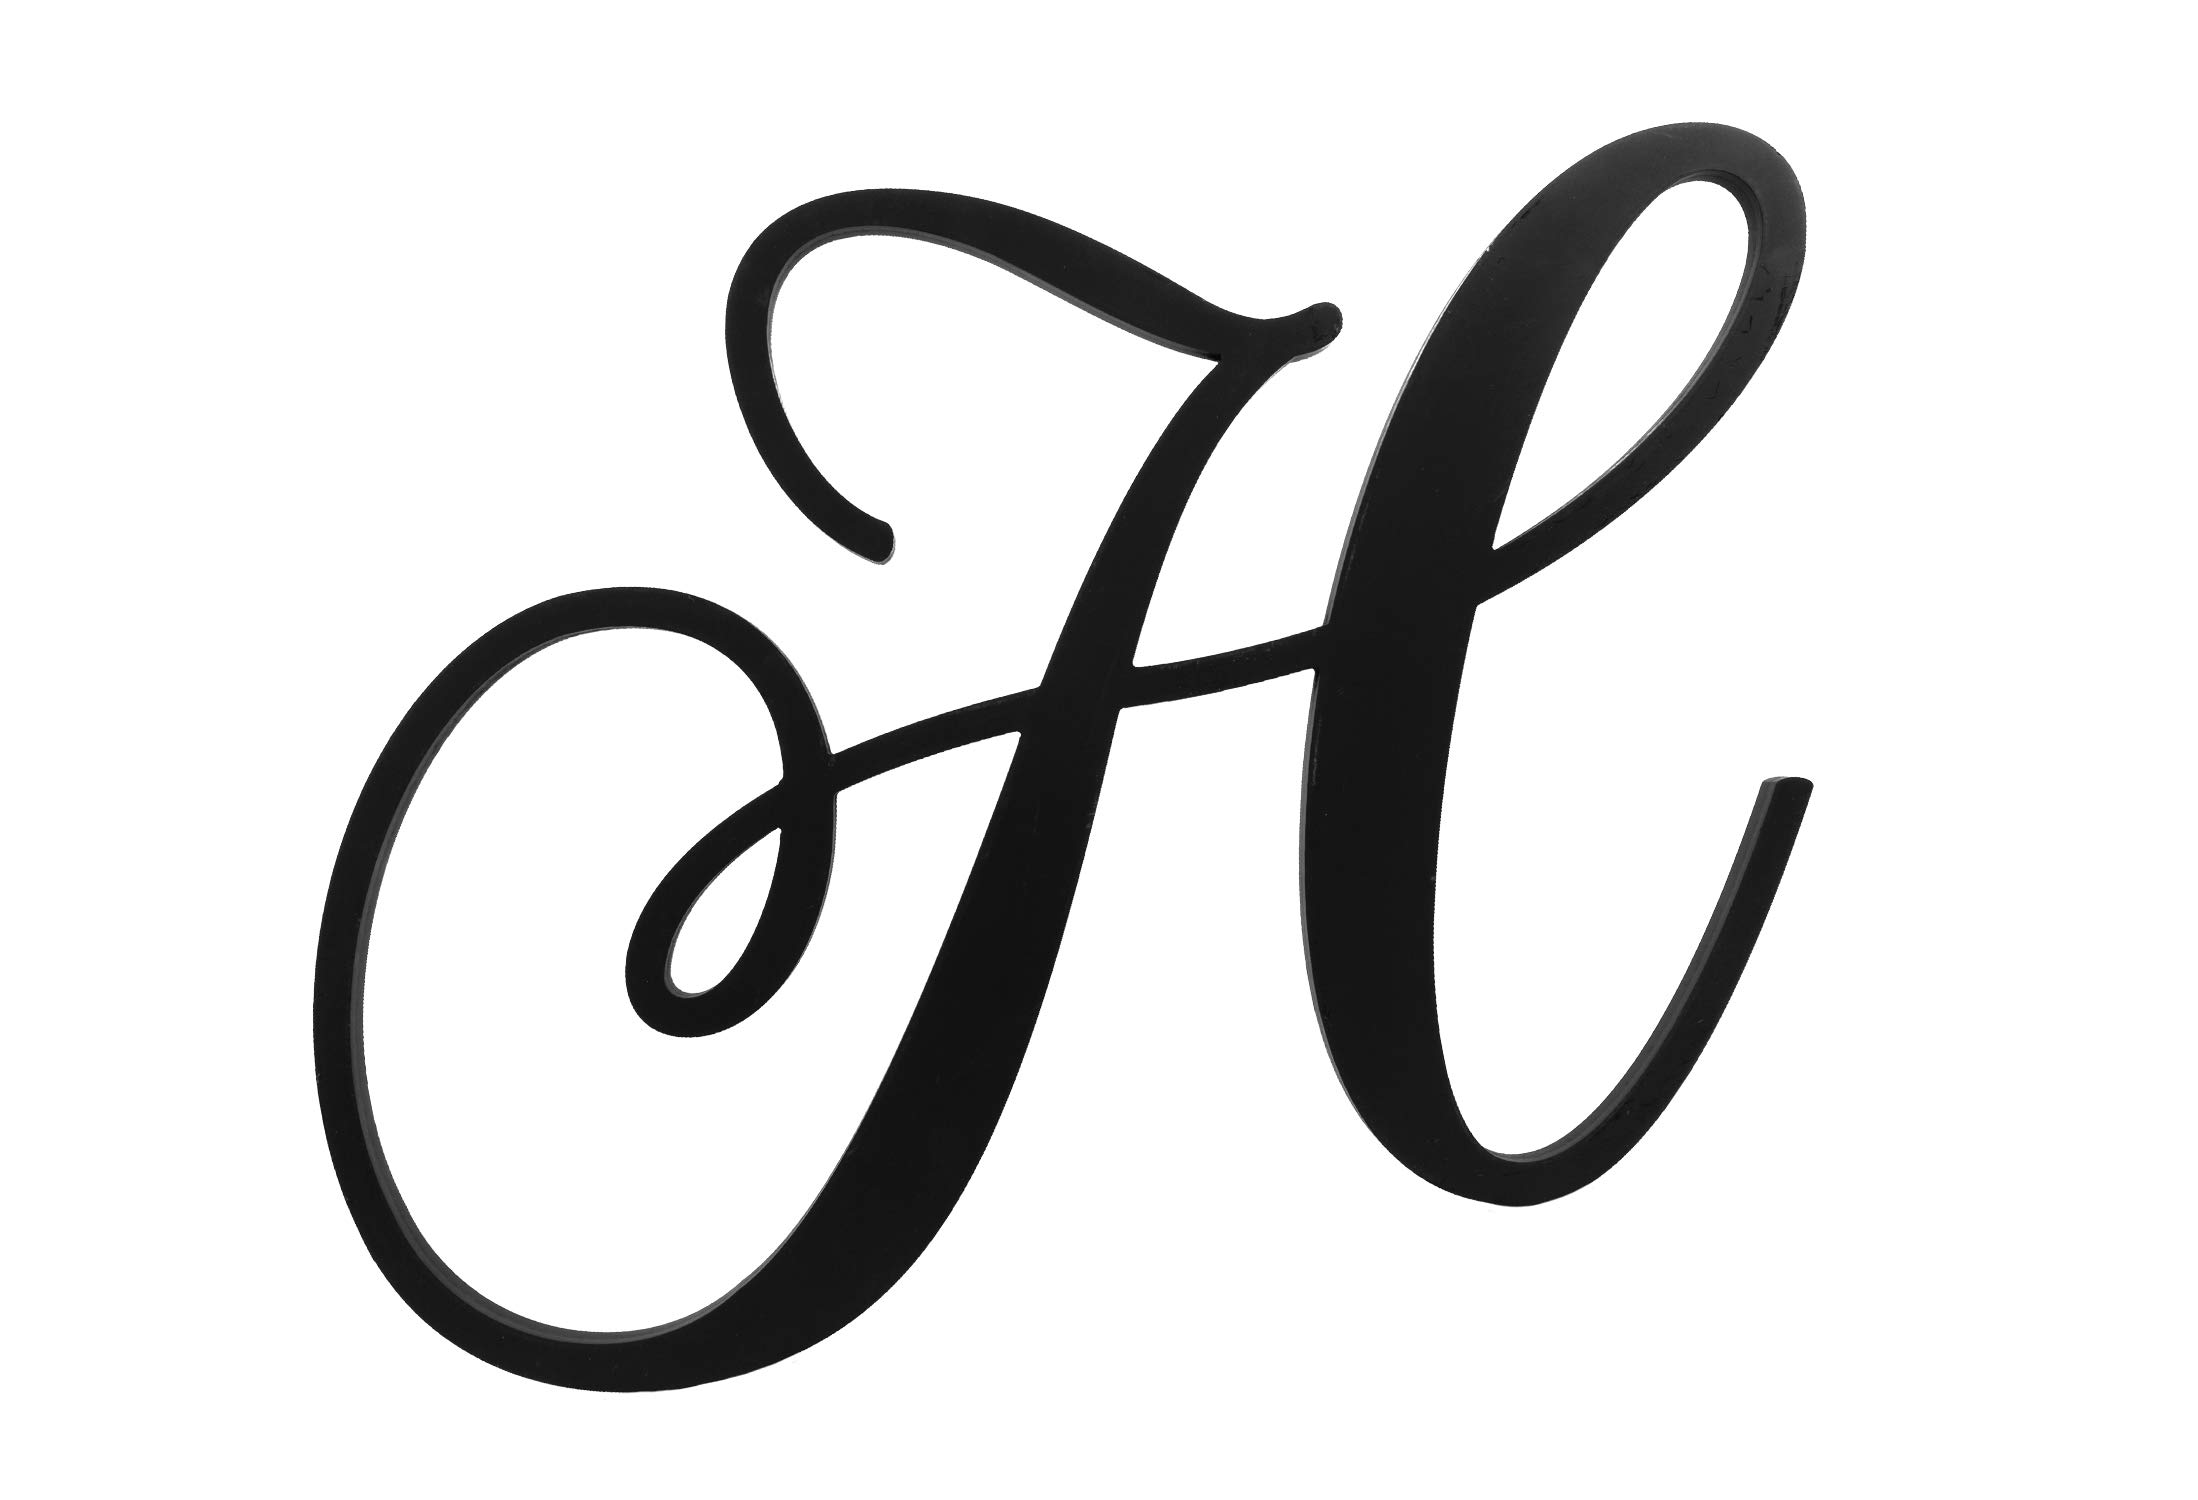 XL Wall Letters Uppercase H | 24'' Wood Paintable Script Capital Letters for Nursery, Home Decor, Wedding Guest Book and More by ROOM STARTERS (H 24'' Black 3/4'' Thick) by ROOM STARTERS (Image #2)